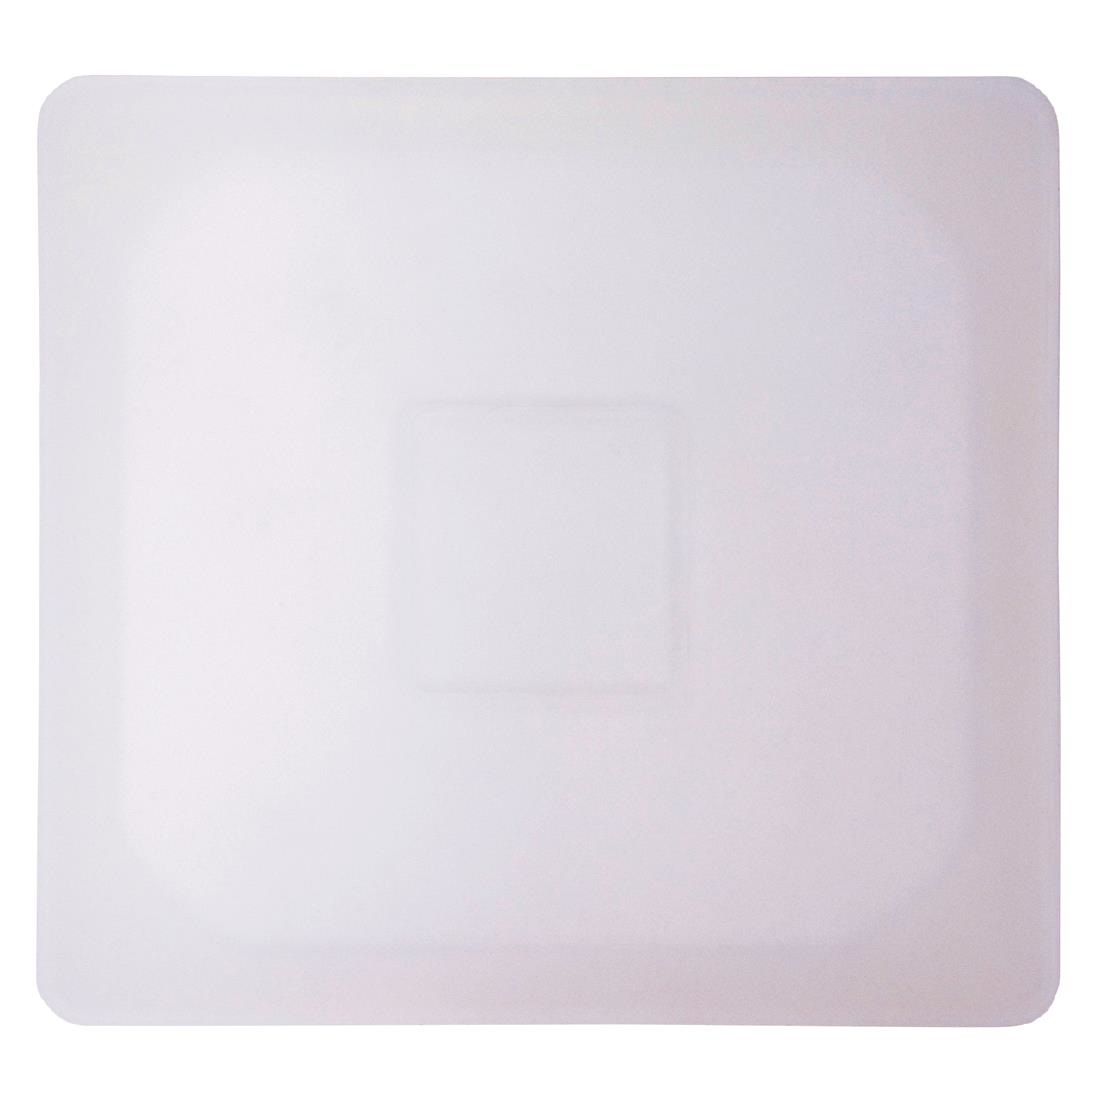 Image of Flexsil Silicone 1/6 Gastronorm Lid Clear